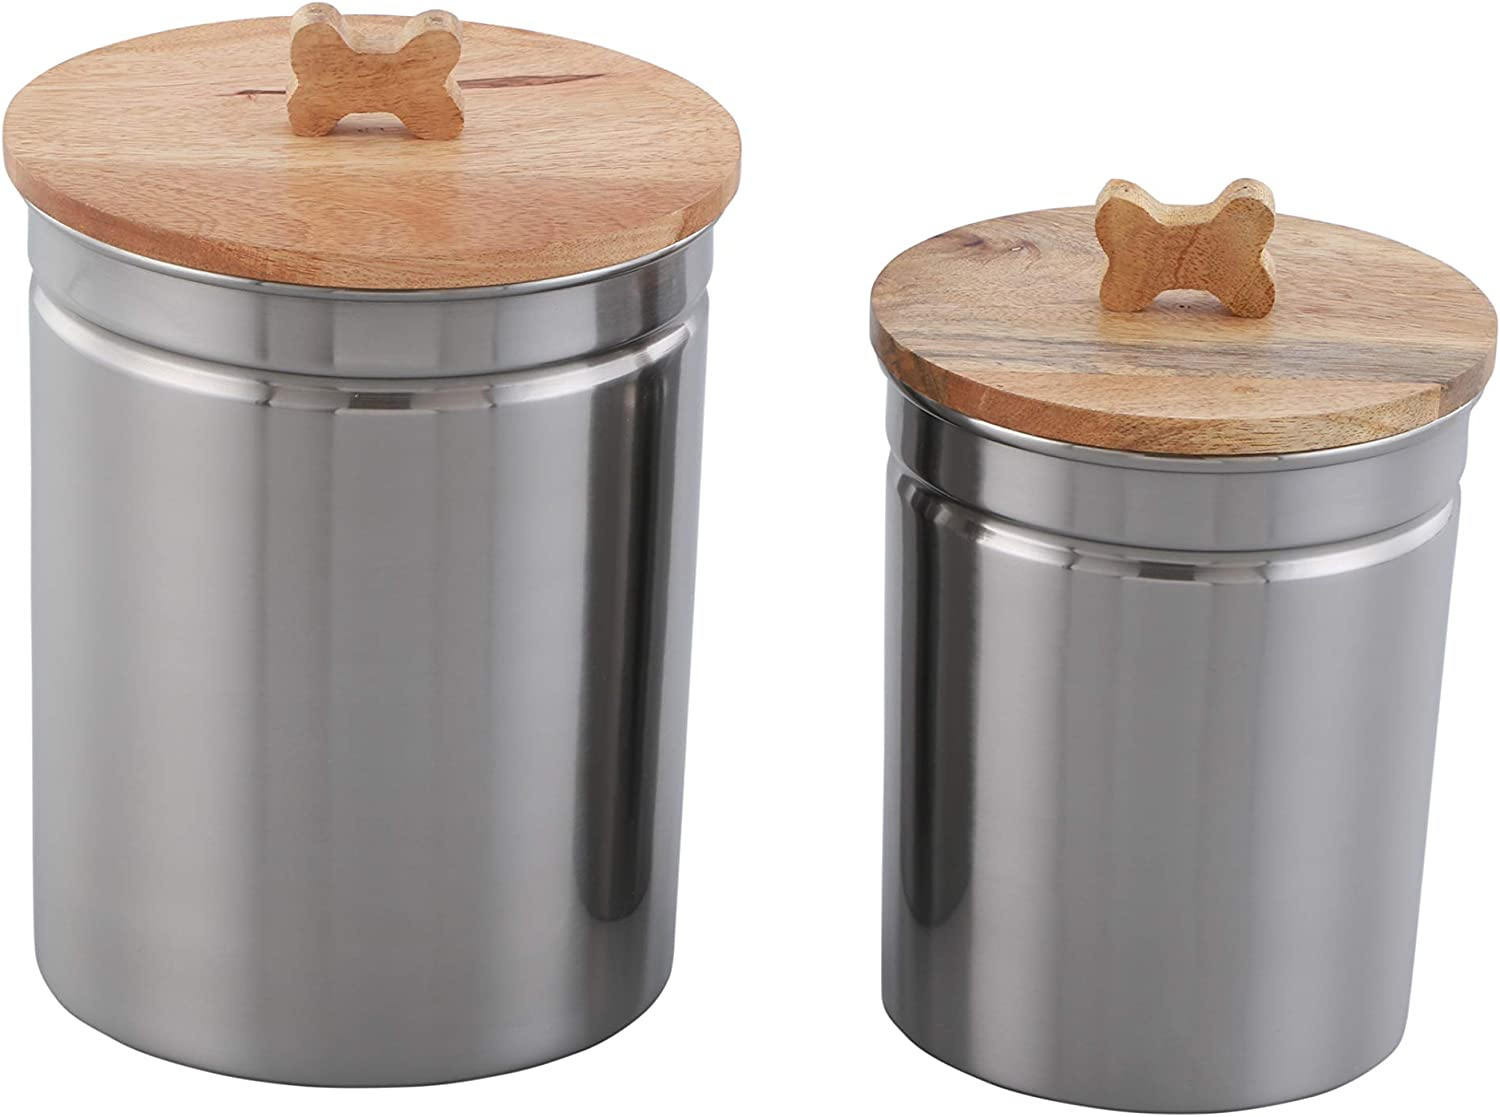 ARTISANS VILLAGE Pet Canisters Fresh Dry Dog & Cat Food Storage Container Stainless Steel for Pet Food, and Bird Seed, Set of 2, Shine